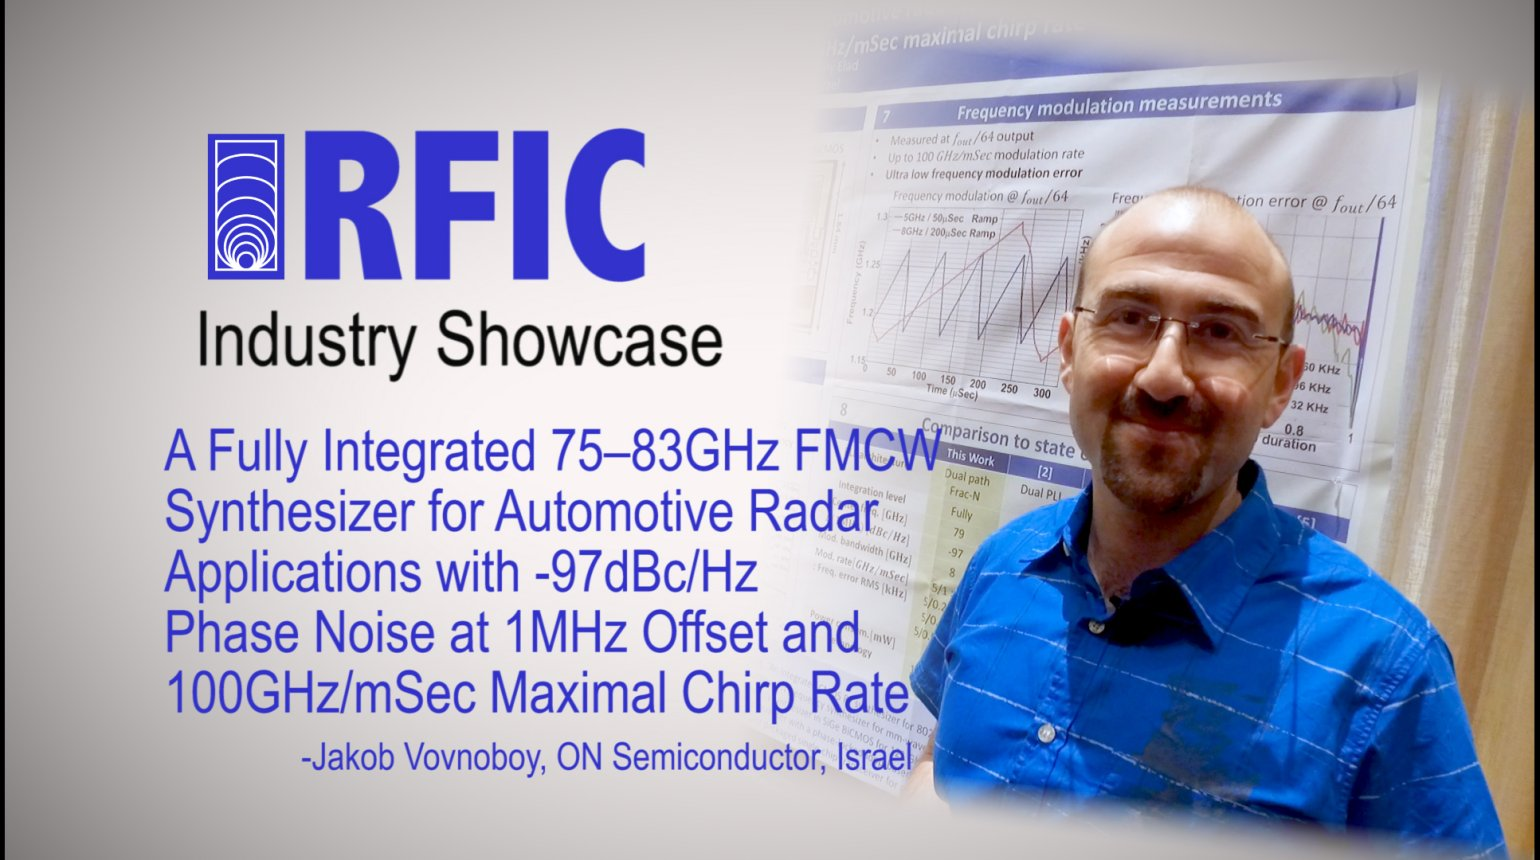 A Fully Integrated 75-83GHz FMCW Synthesizer for Automotive Radar Applications with -97dBc/Hz Phase Noise at 1MHz Offset and 100GHz/mSec Maximal Chirp Rate: RFIC Industry Showcase 2017